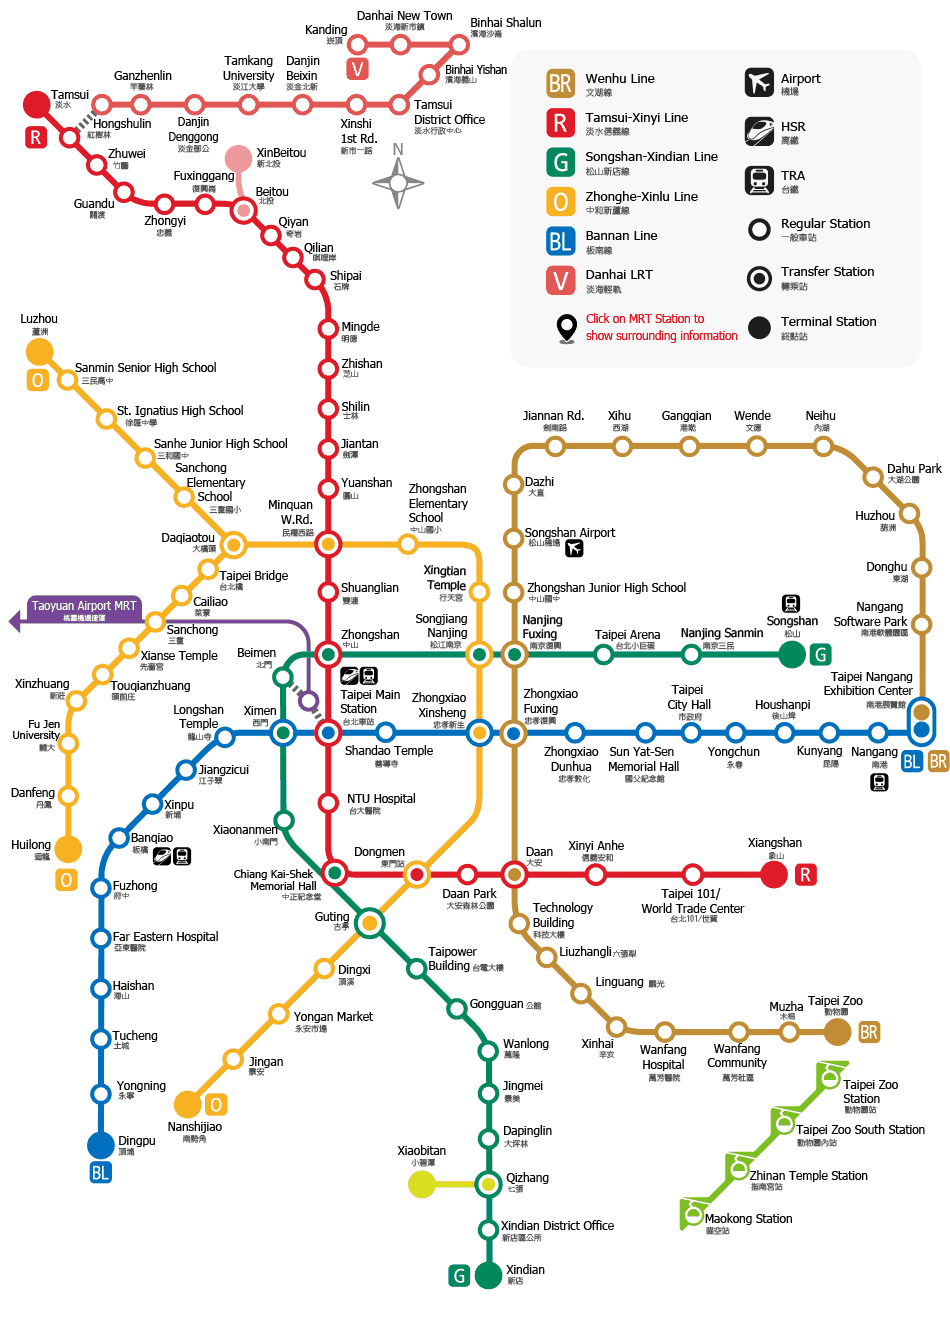 Mass Rapid Transit map of Taipei